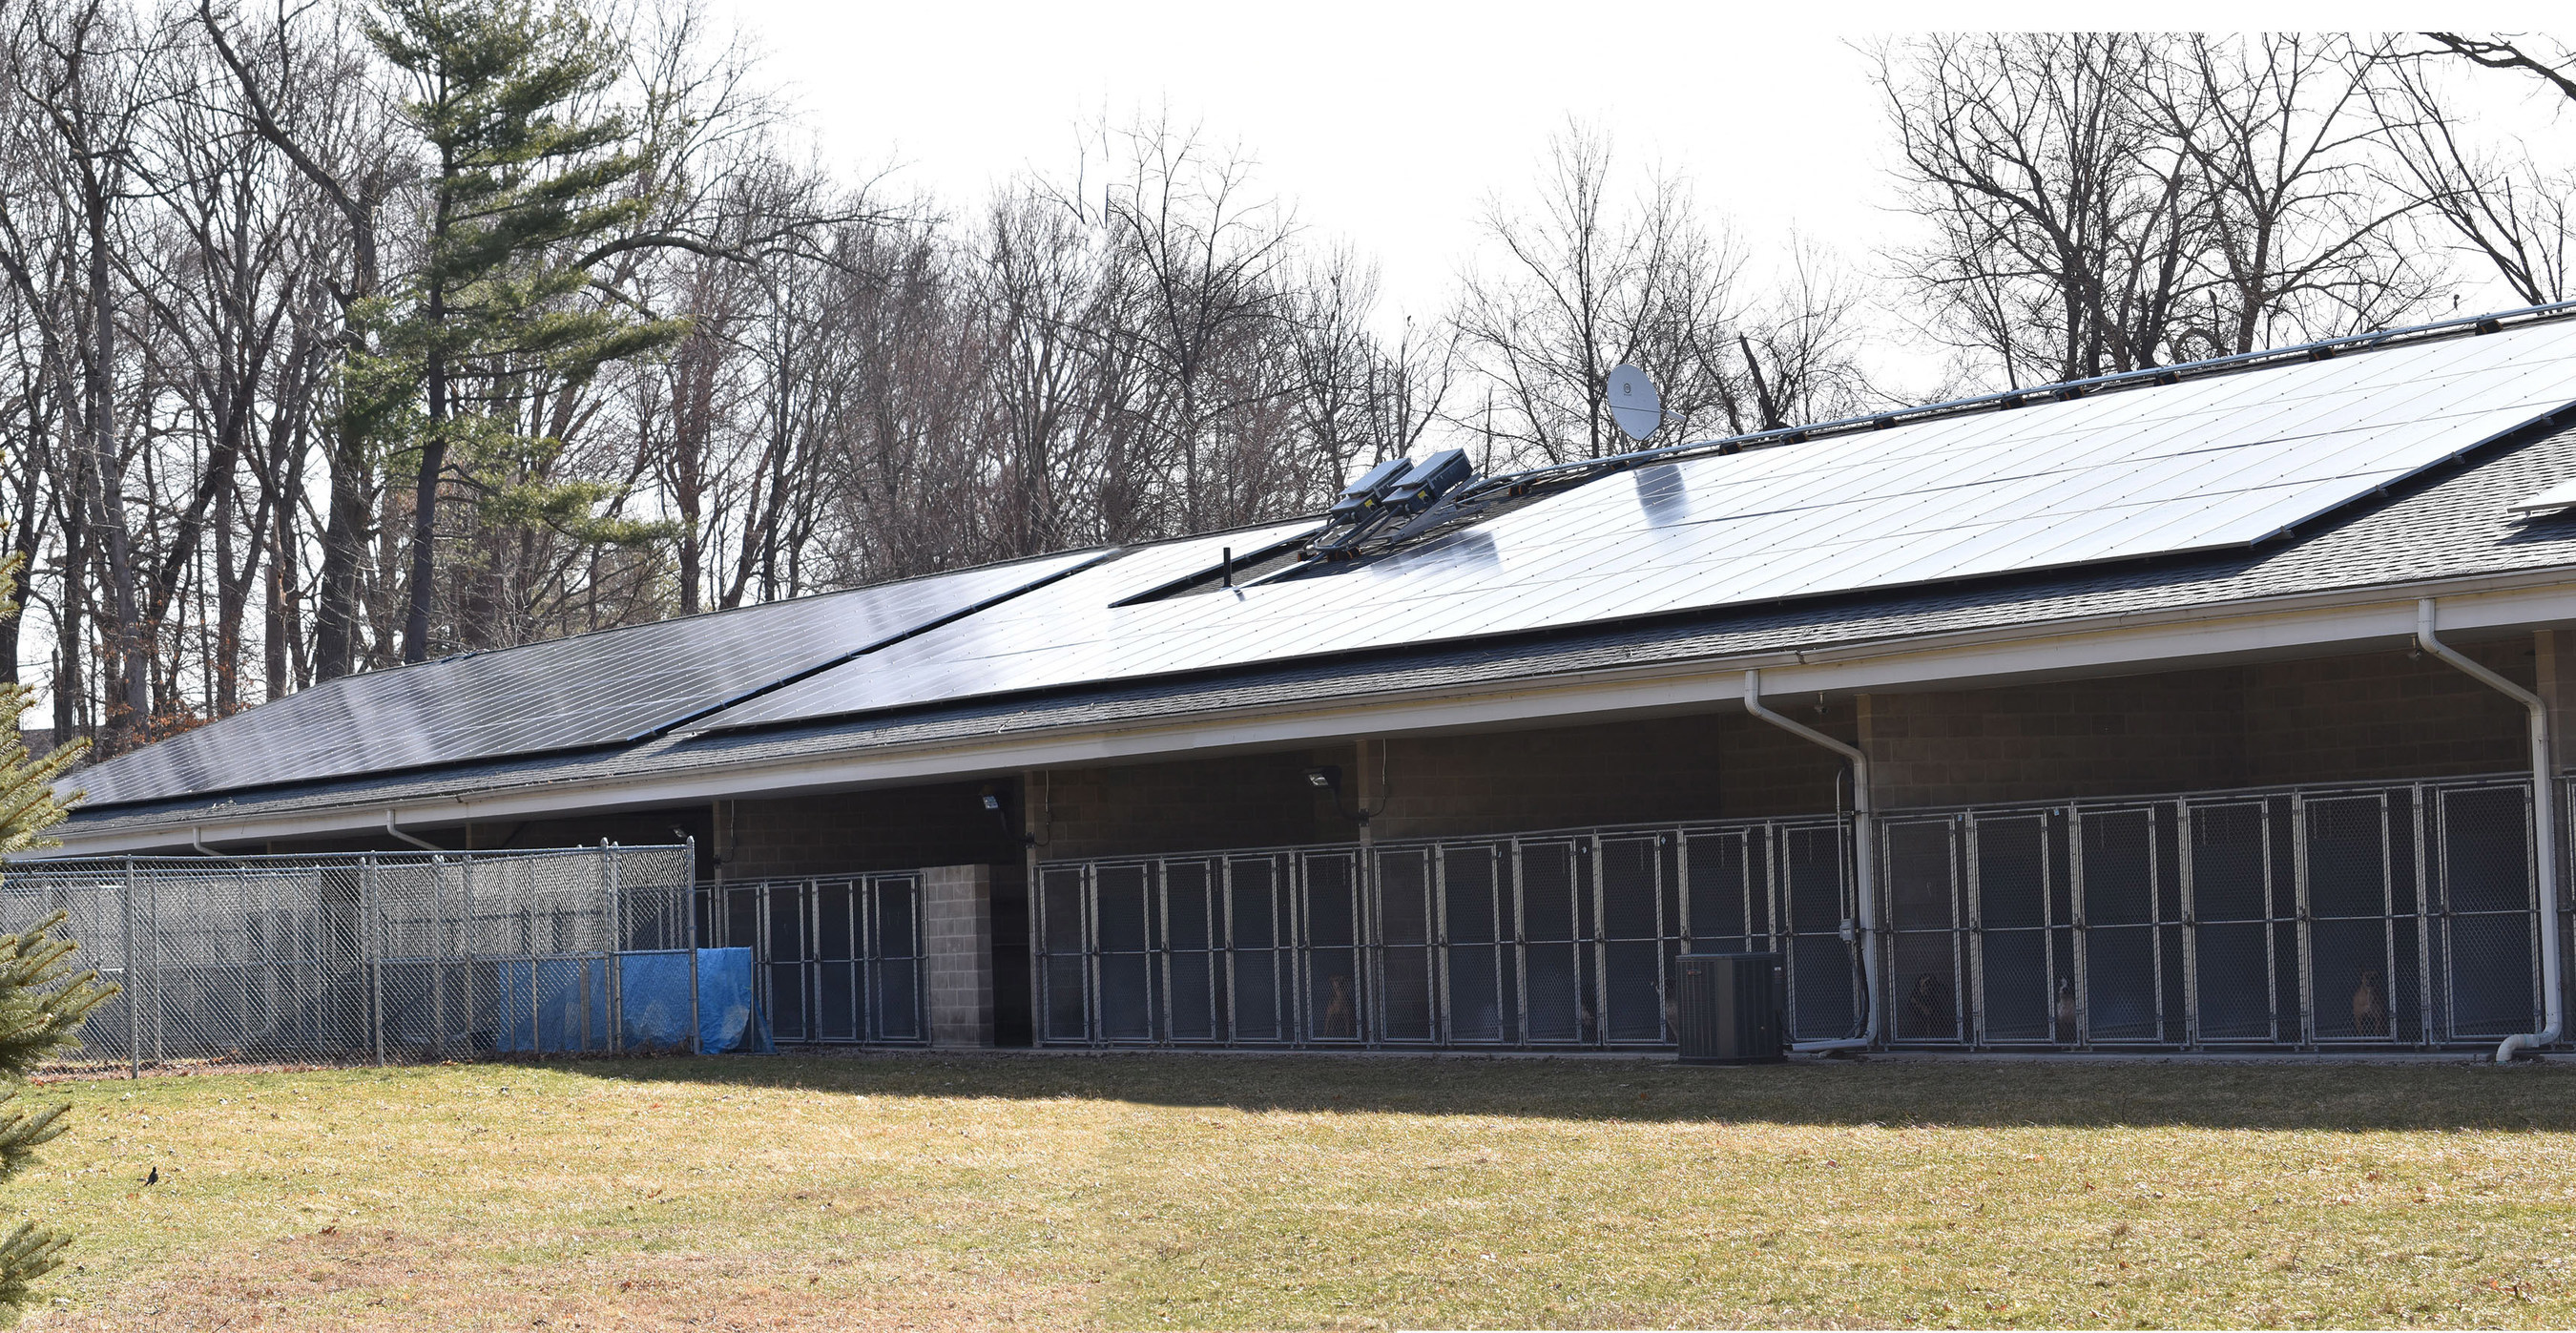 The newly installed rooftop array on top of the kennels